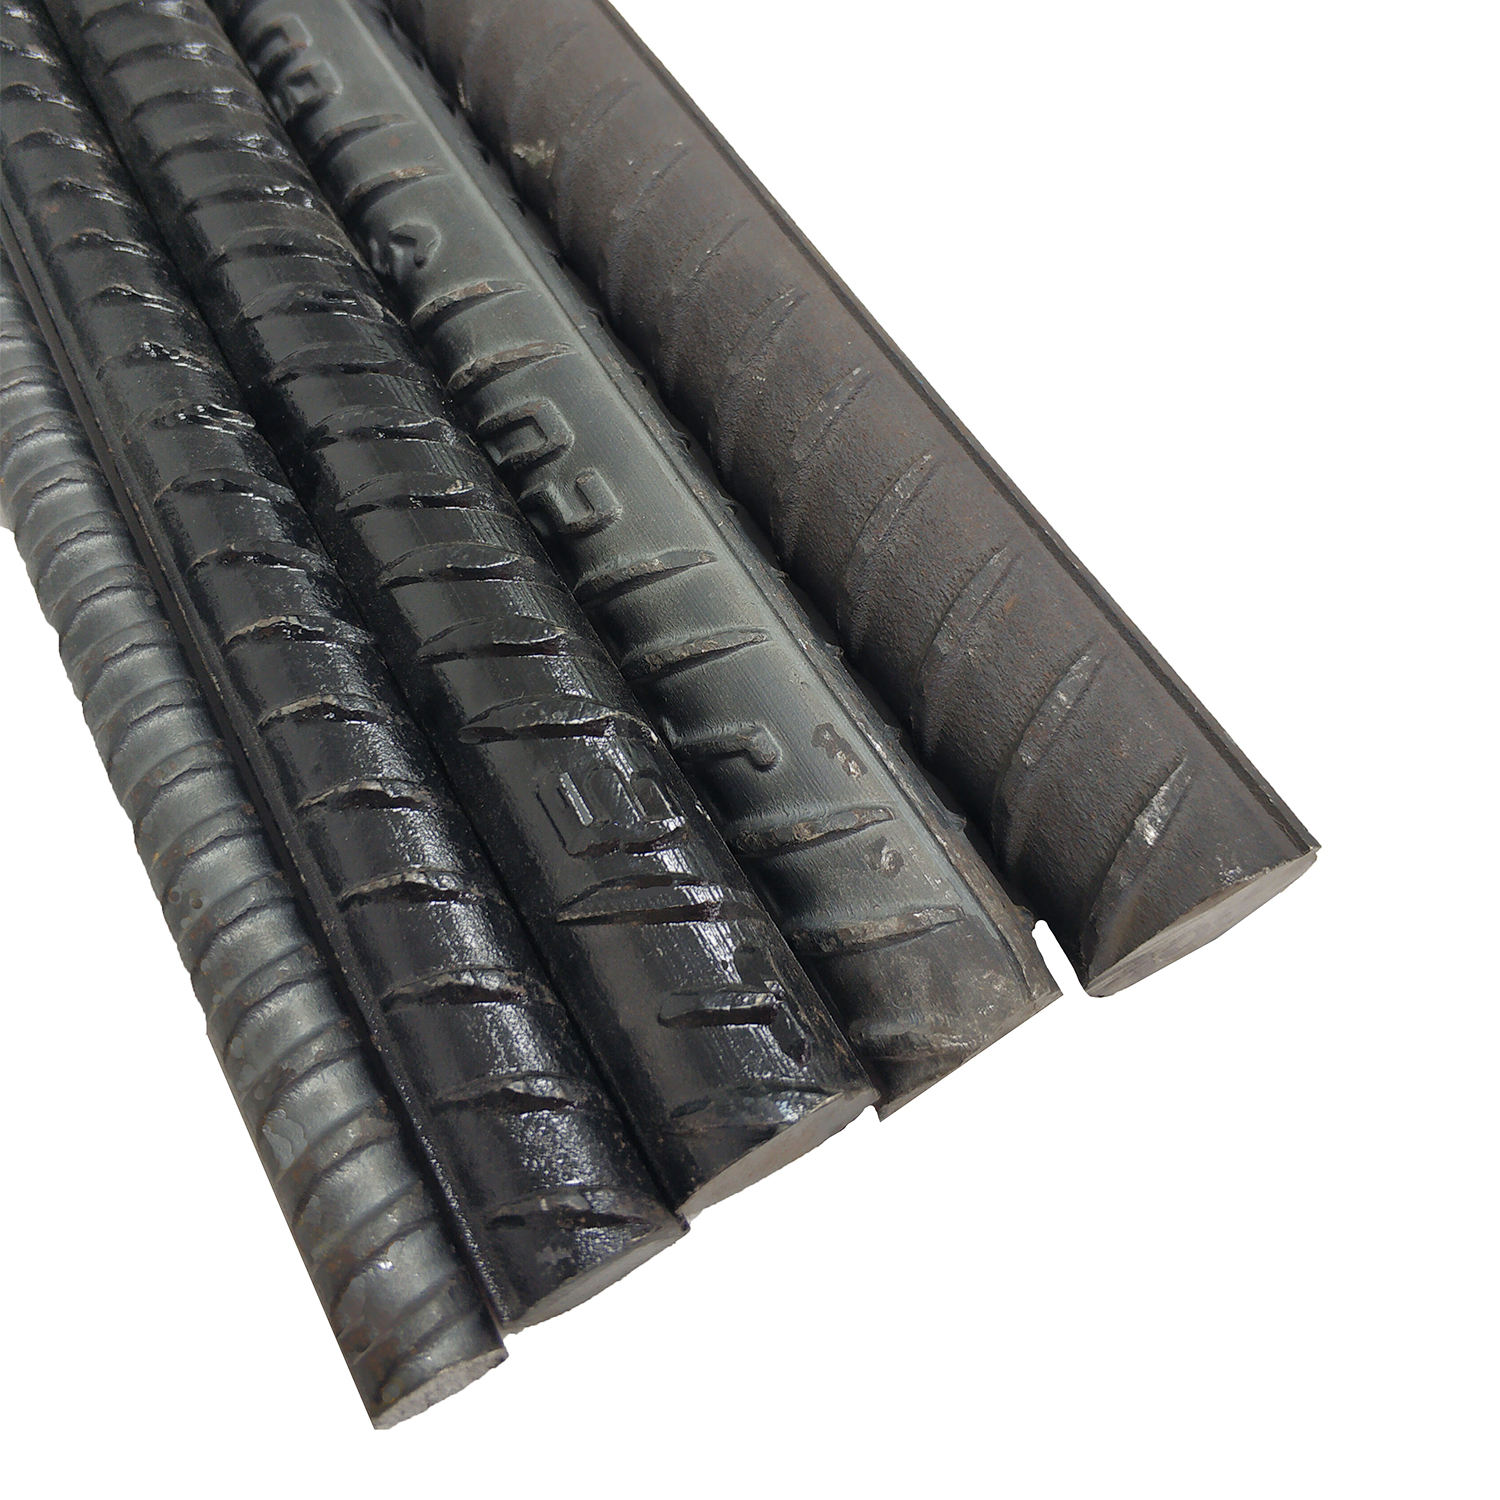 6mm 8mm 10mm 12mm 16mm 20mm Hot Rolled Deformed Steel Bar Rebar Steel Iron Rod For Construction Rebar Steel